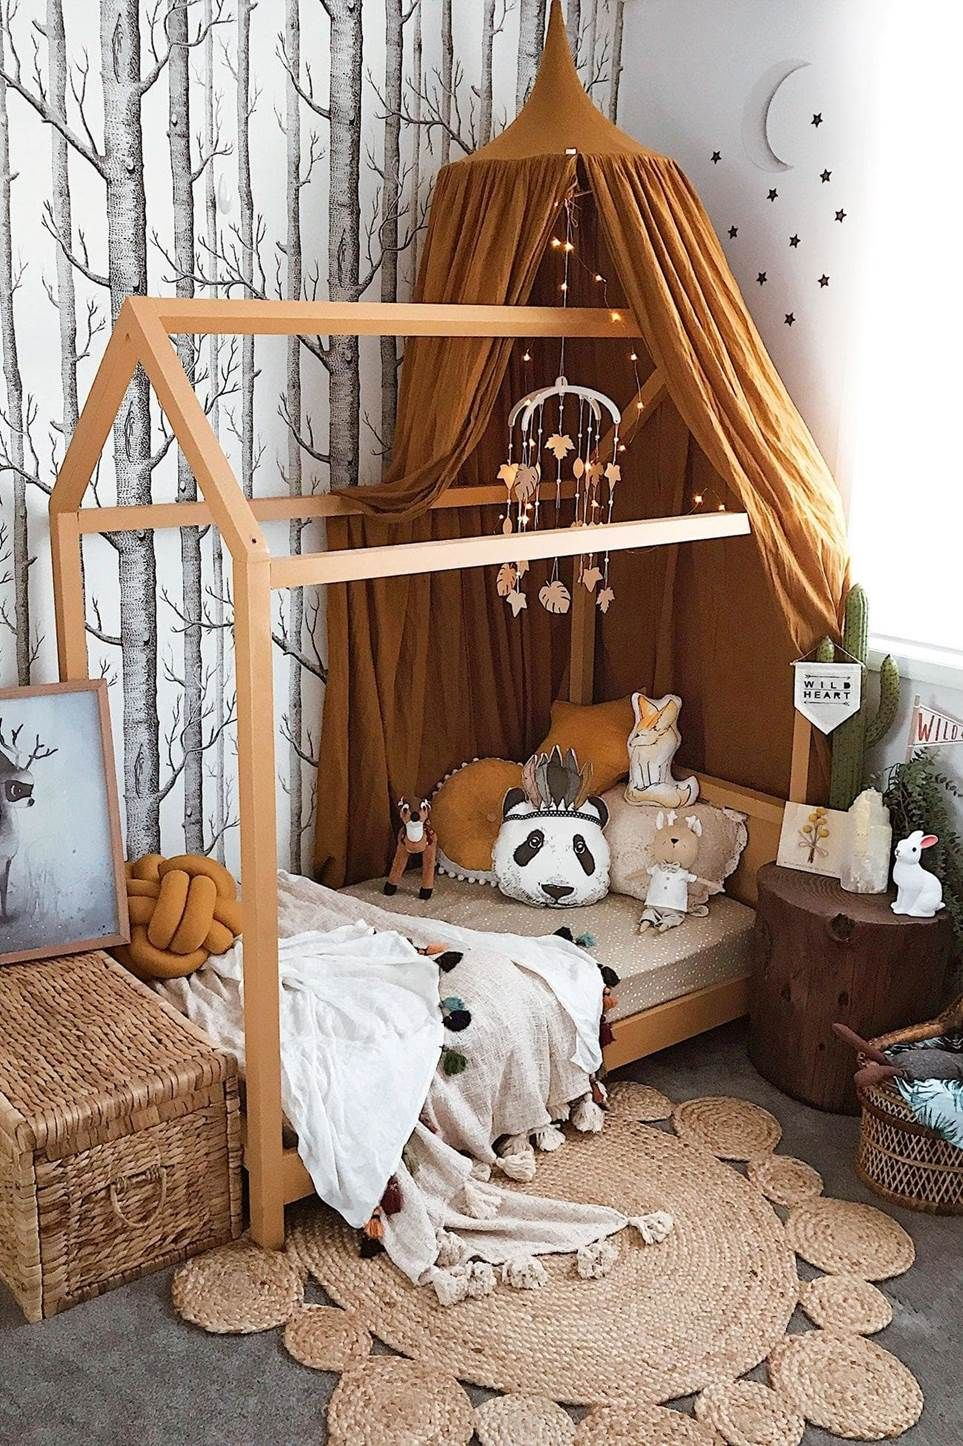 9 of the best kids' bedrooms and how to create them #kidsrooms